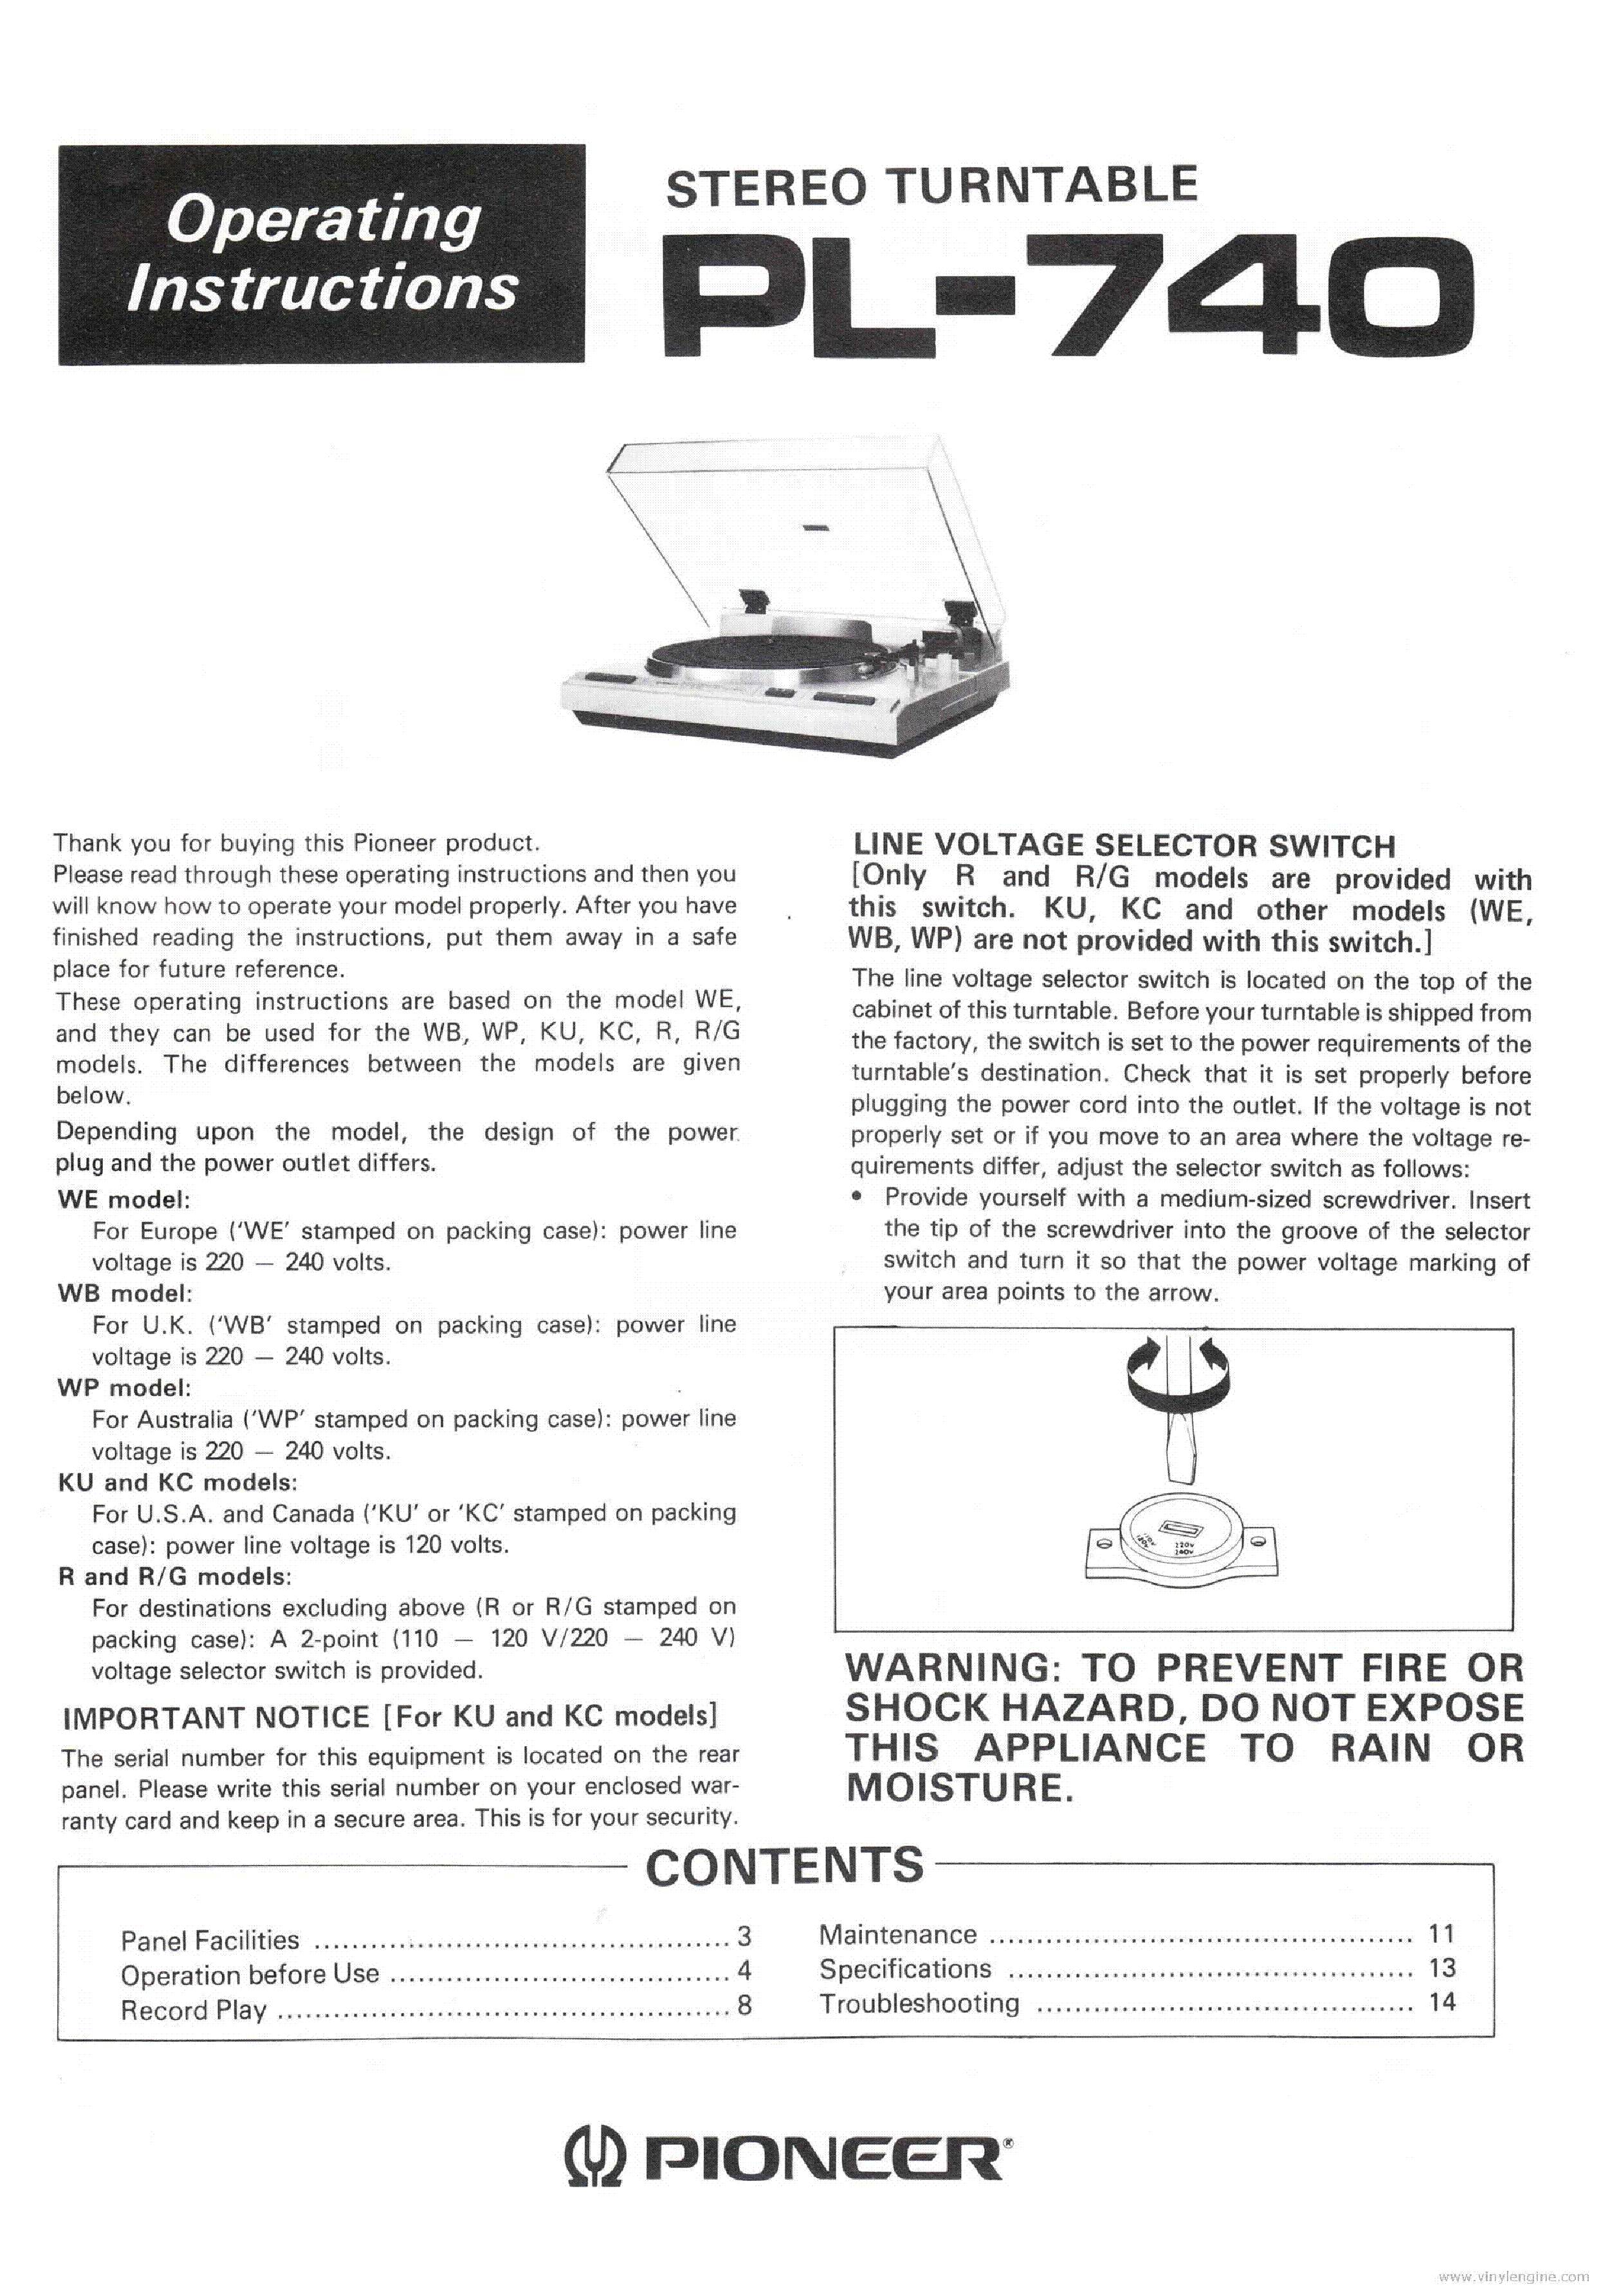 PIONEER PL-740 STEREO TURNTABLE 1983 OP SM service manual (1st page)